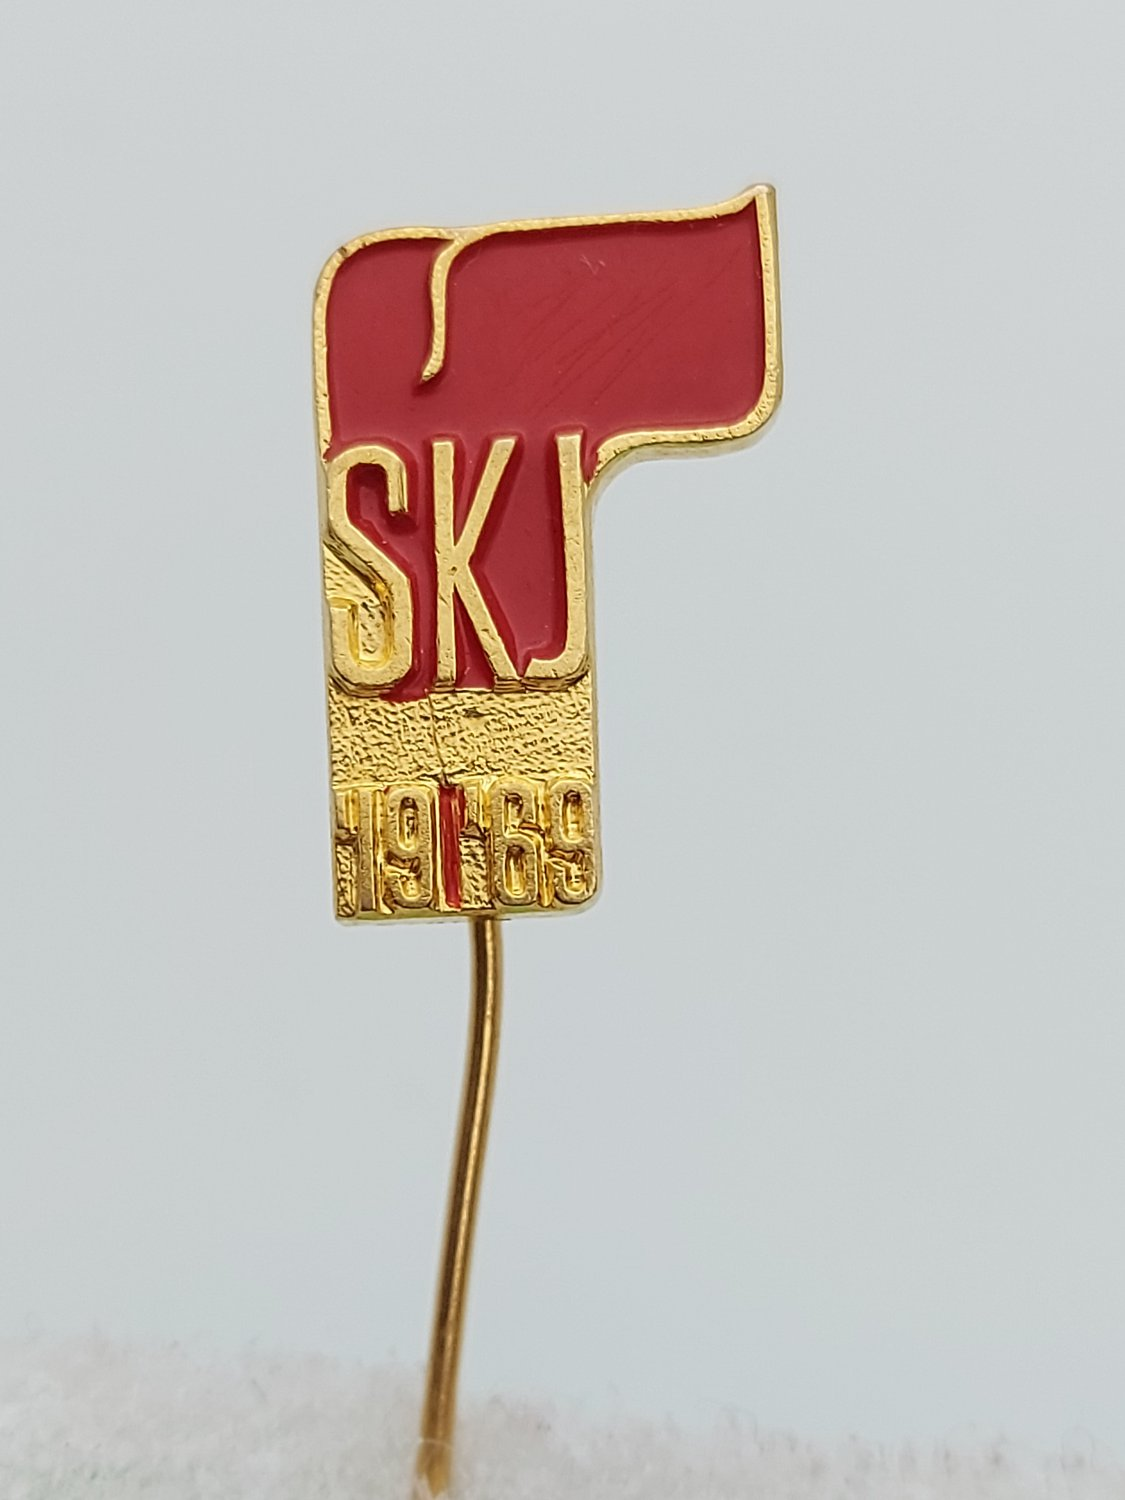 SKJ - League of Communists of Yugoslavia 1969. sickle and hammer pin badge